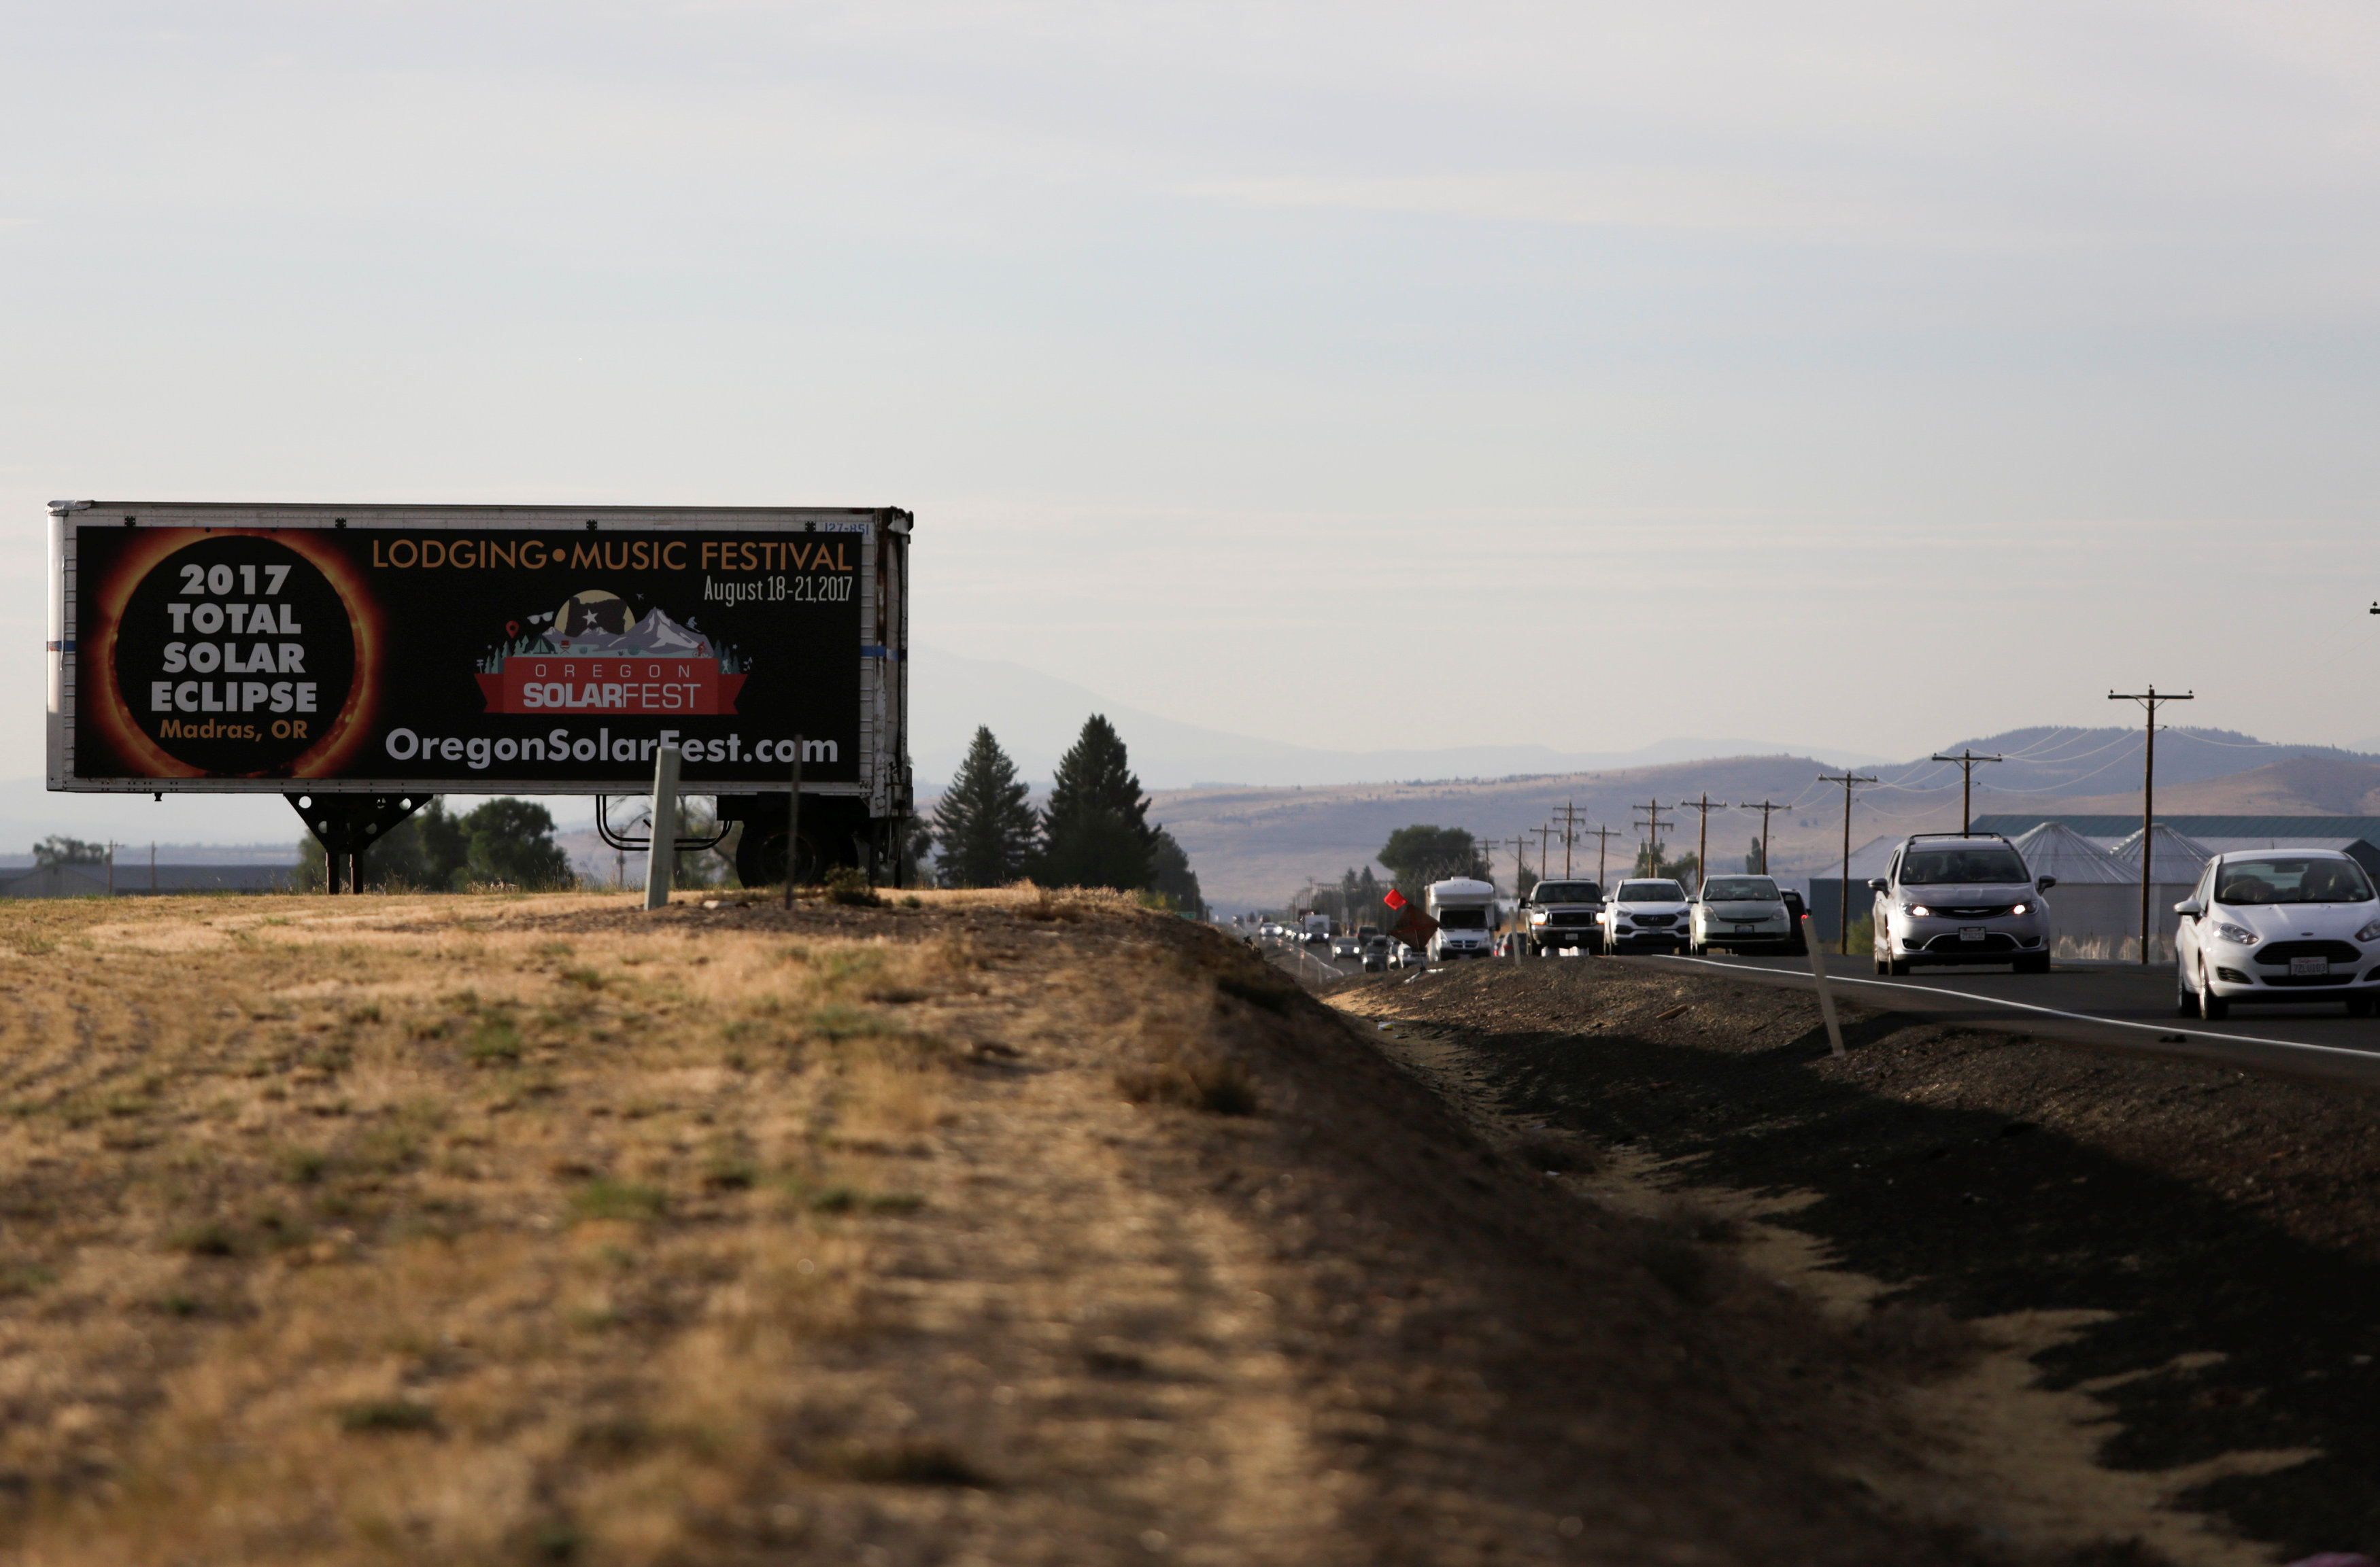 A sign promoting the solar eclipse is pictured as people drive into Madras, Oregon on Aug.20, 2017. (REUTERS/Jason Redmond)